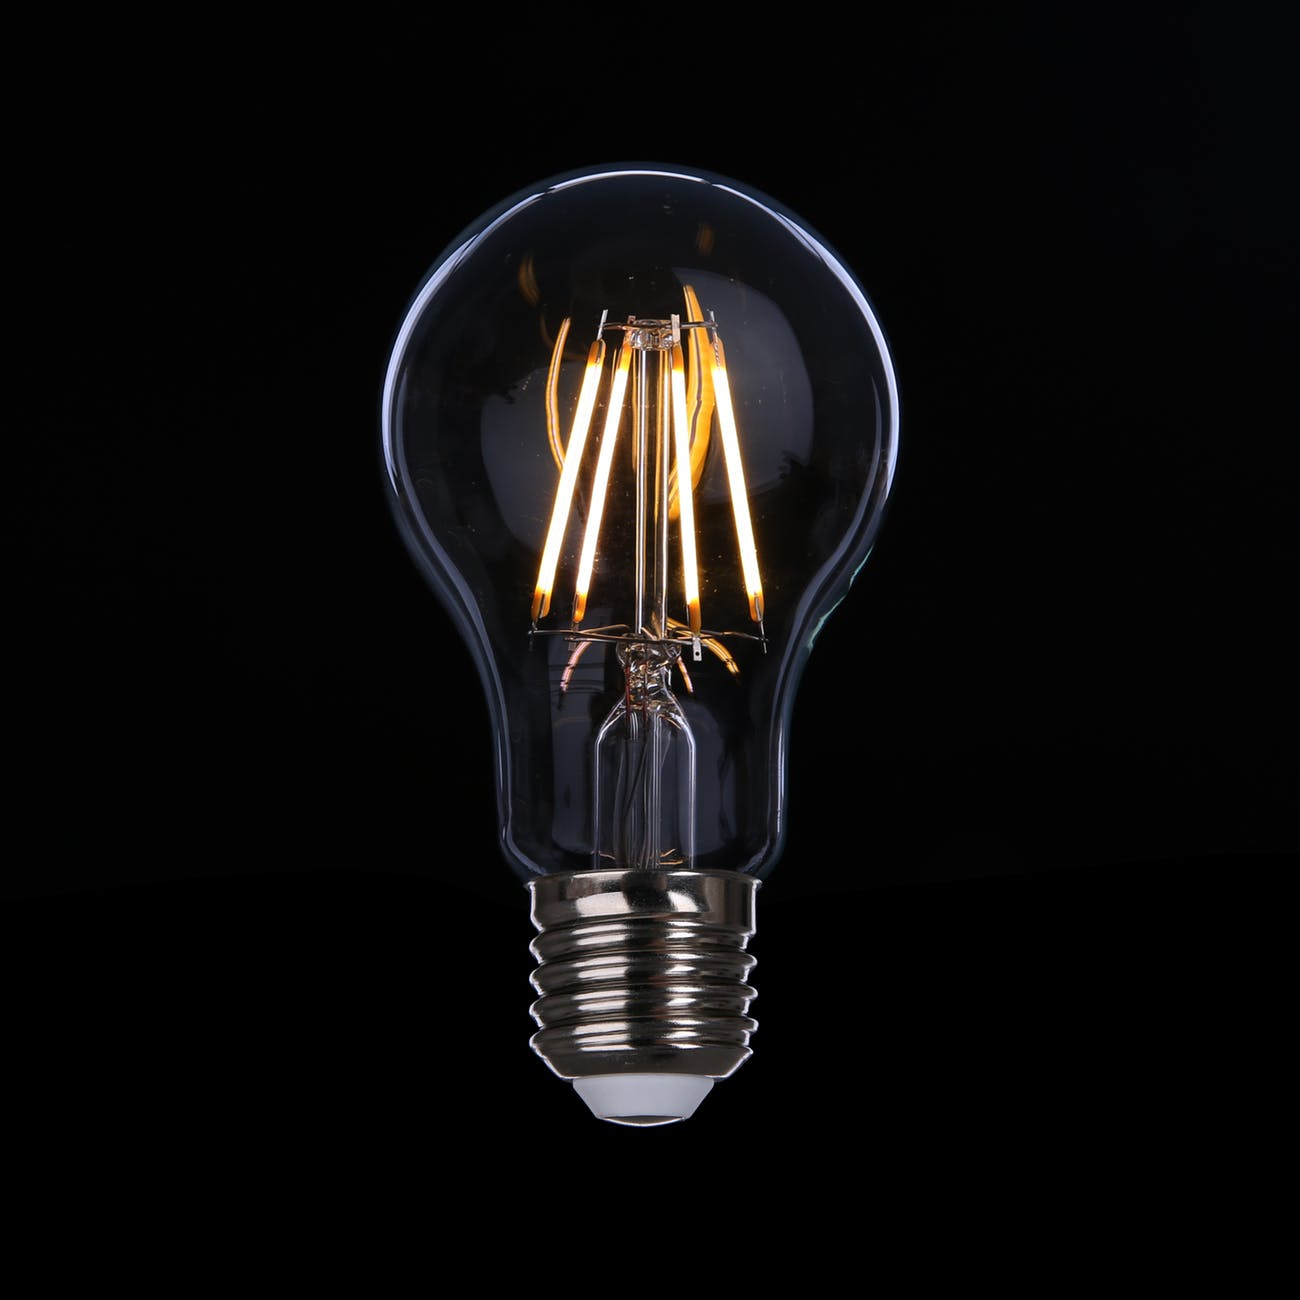 Filament led bulbs that mimic hipster old school incandescence filament led bulbs that mimic hipster old school incandescence arubaitofo Images